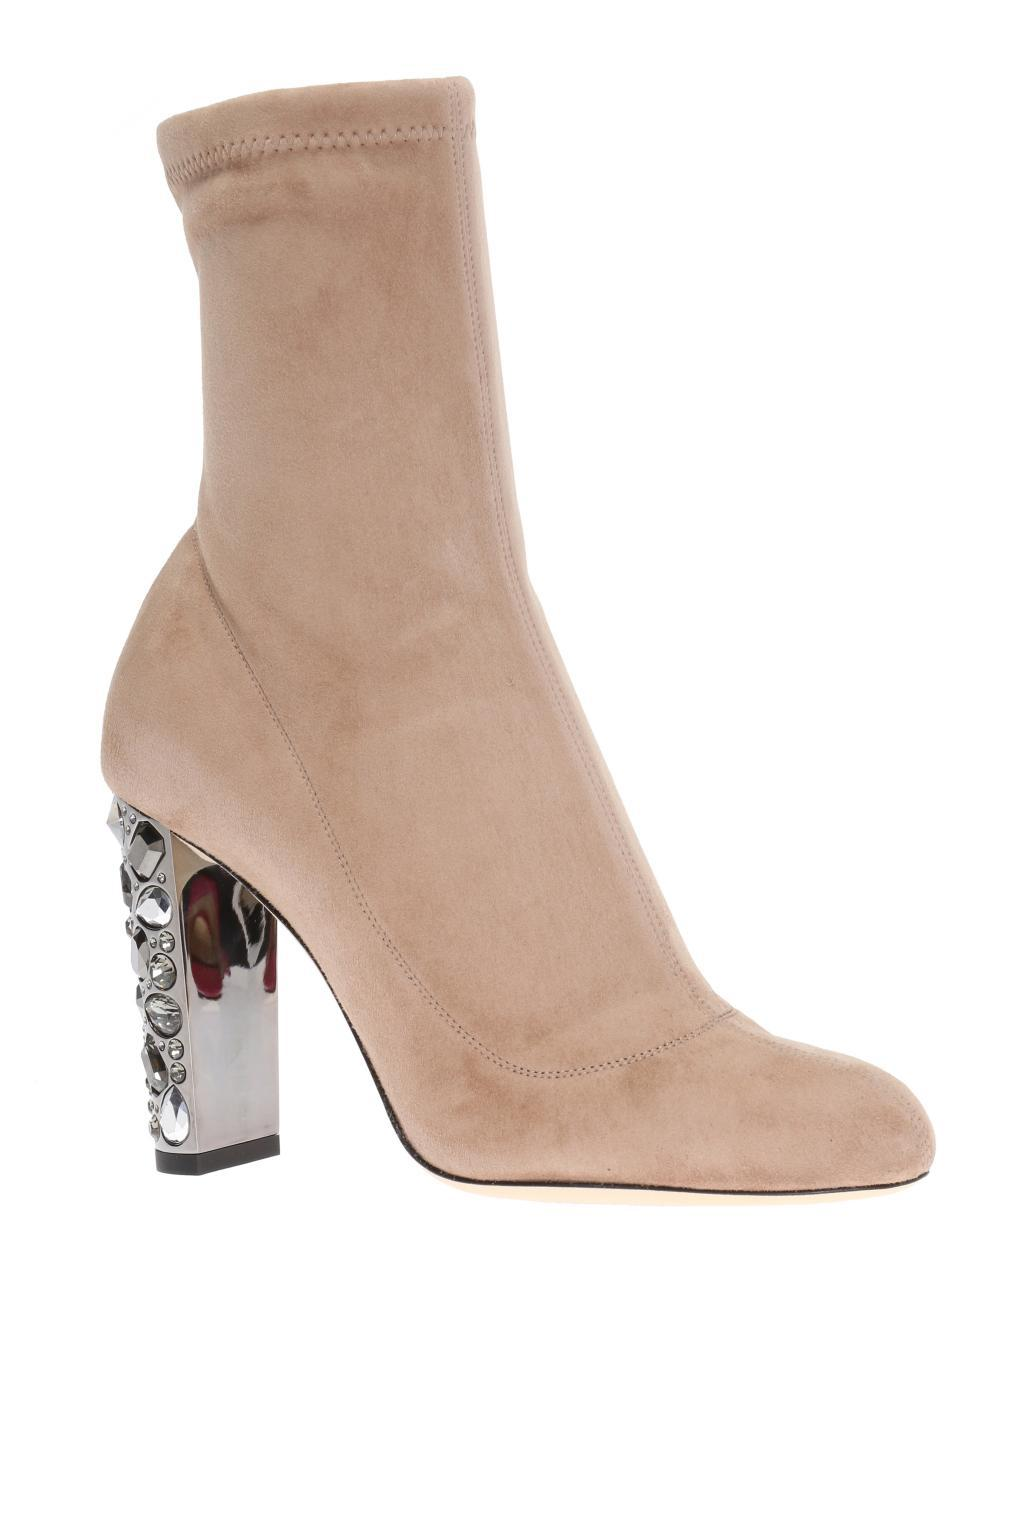 Jimmy Choo Suede 'maine' Heeled Boots in Brown